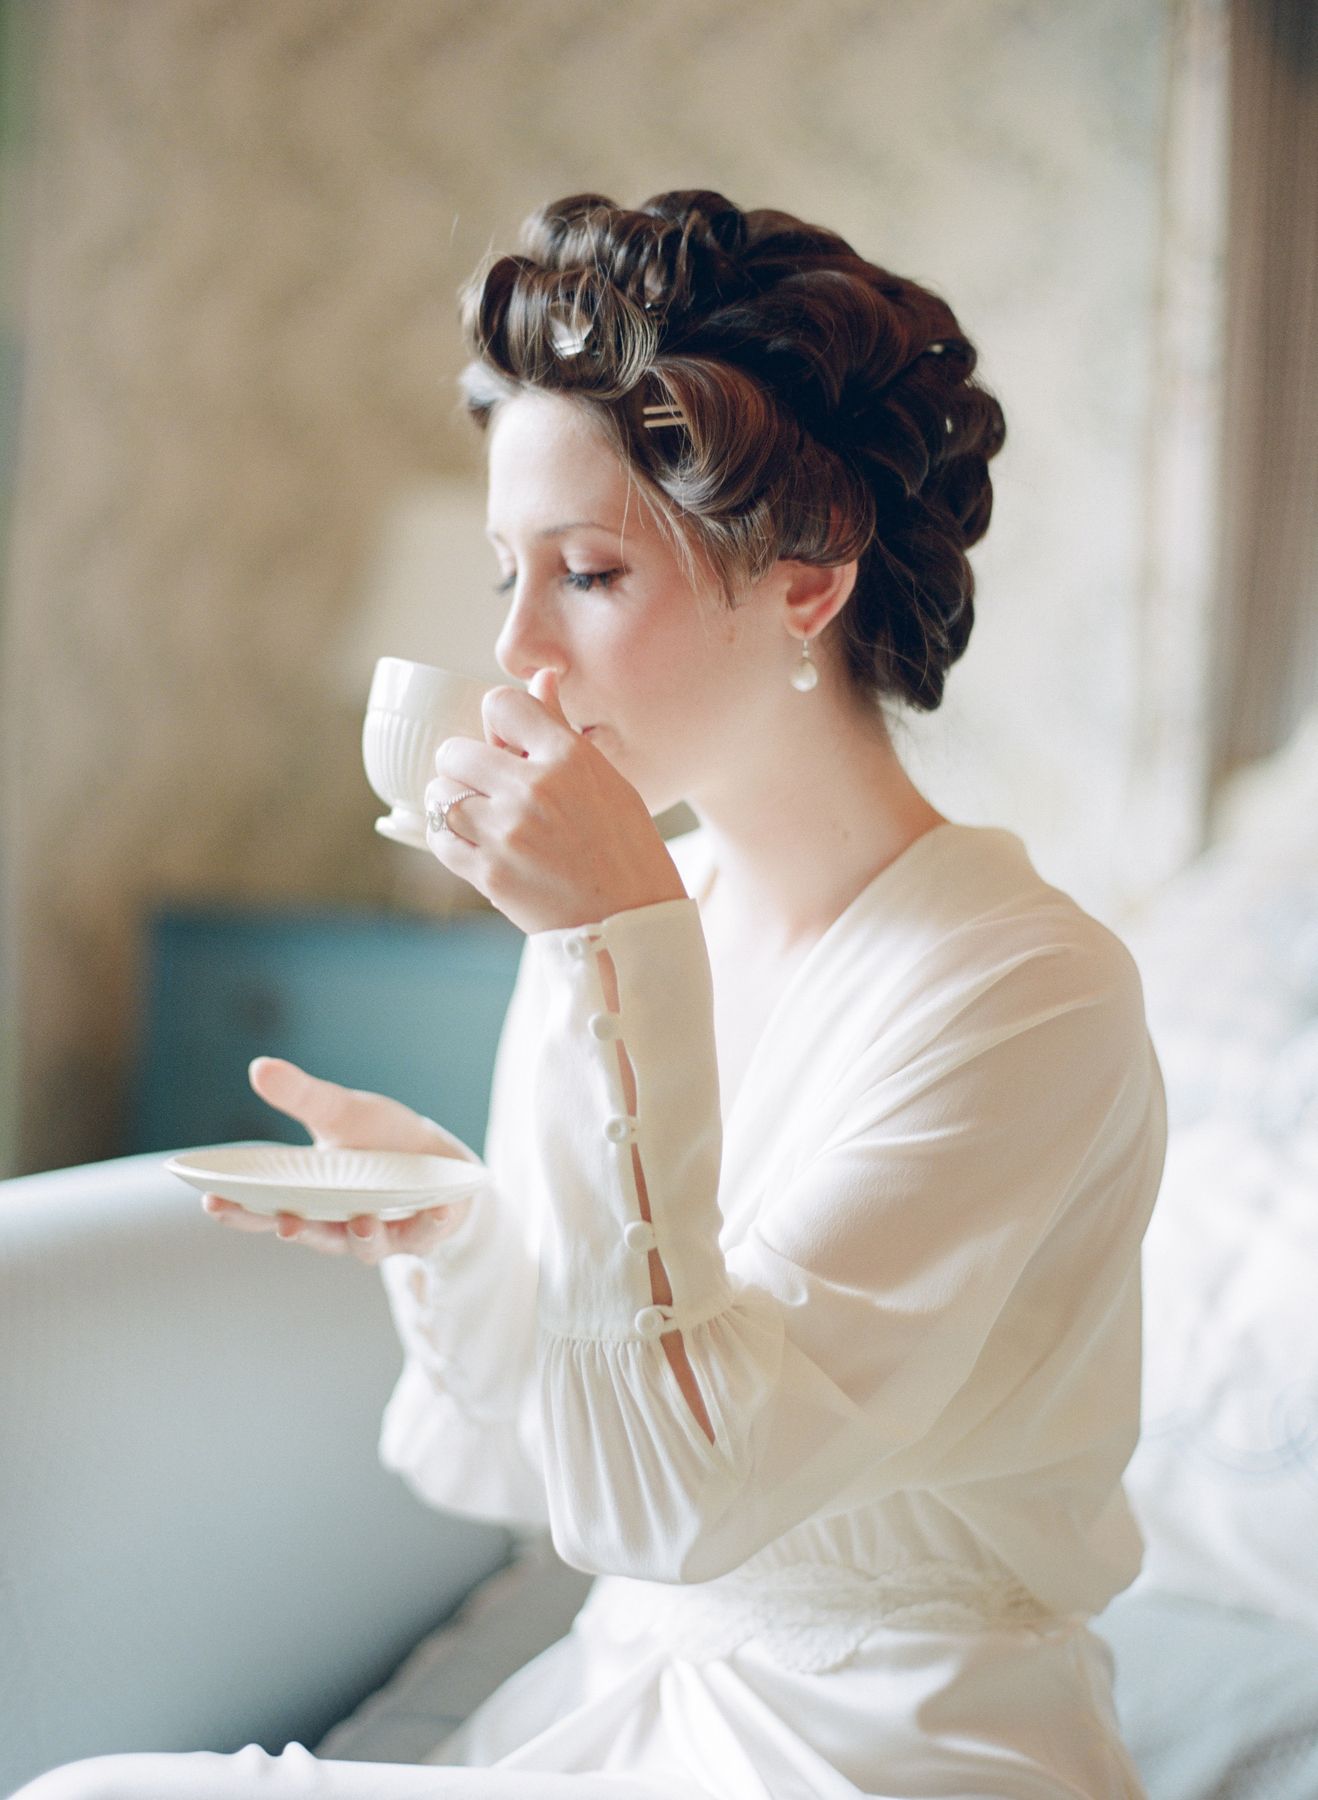 Bride in hair curlers sipping tea and getting ready for wedding